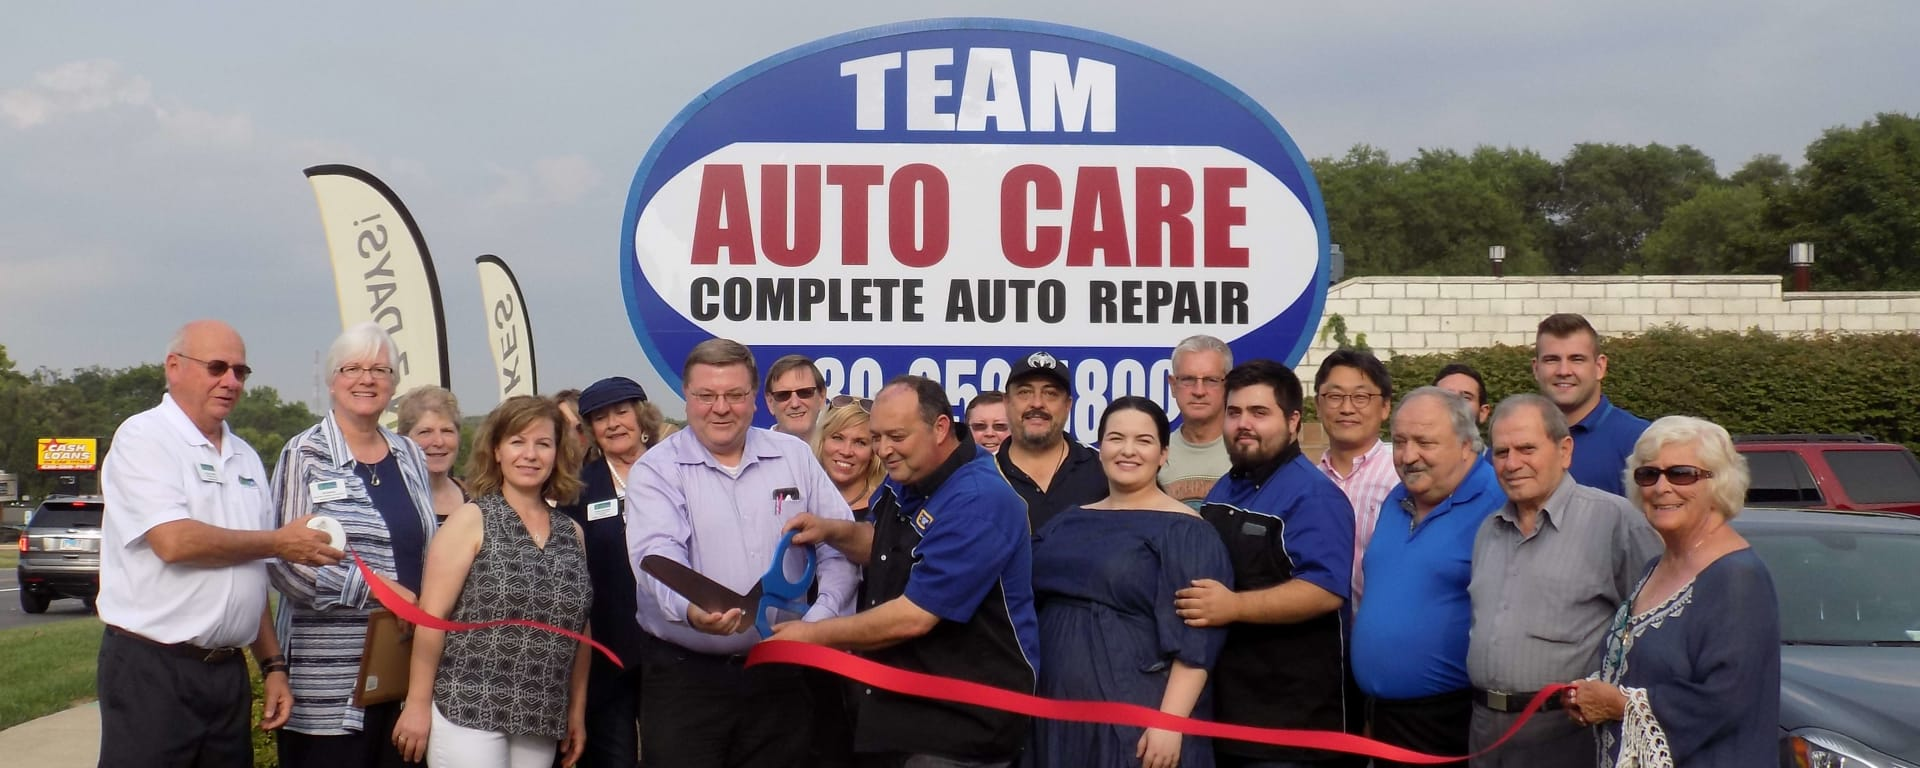 Team-Auto-Care-Ribbon-Cutting-w1920.jpg